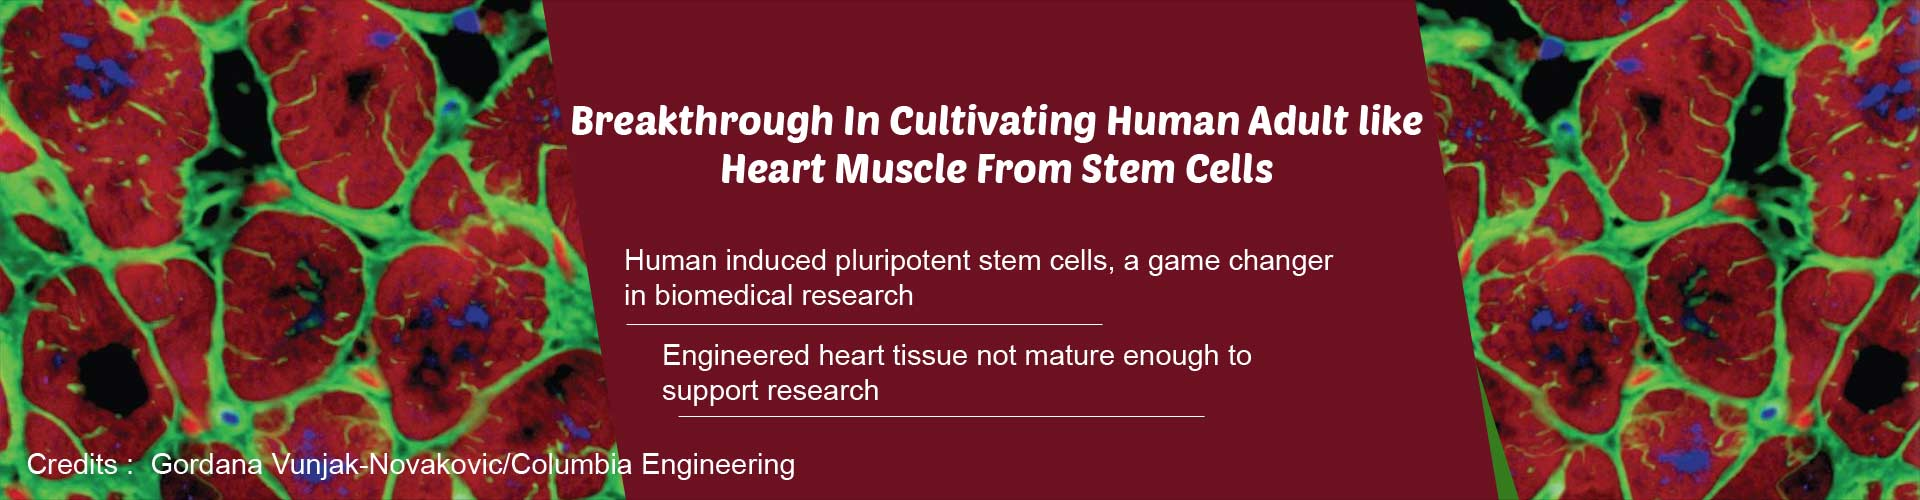 Stem Cells Used to Engineer Heart Muscle Similar That of an Adult